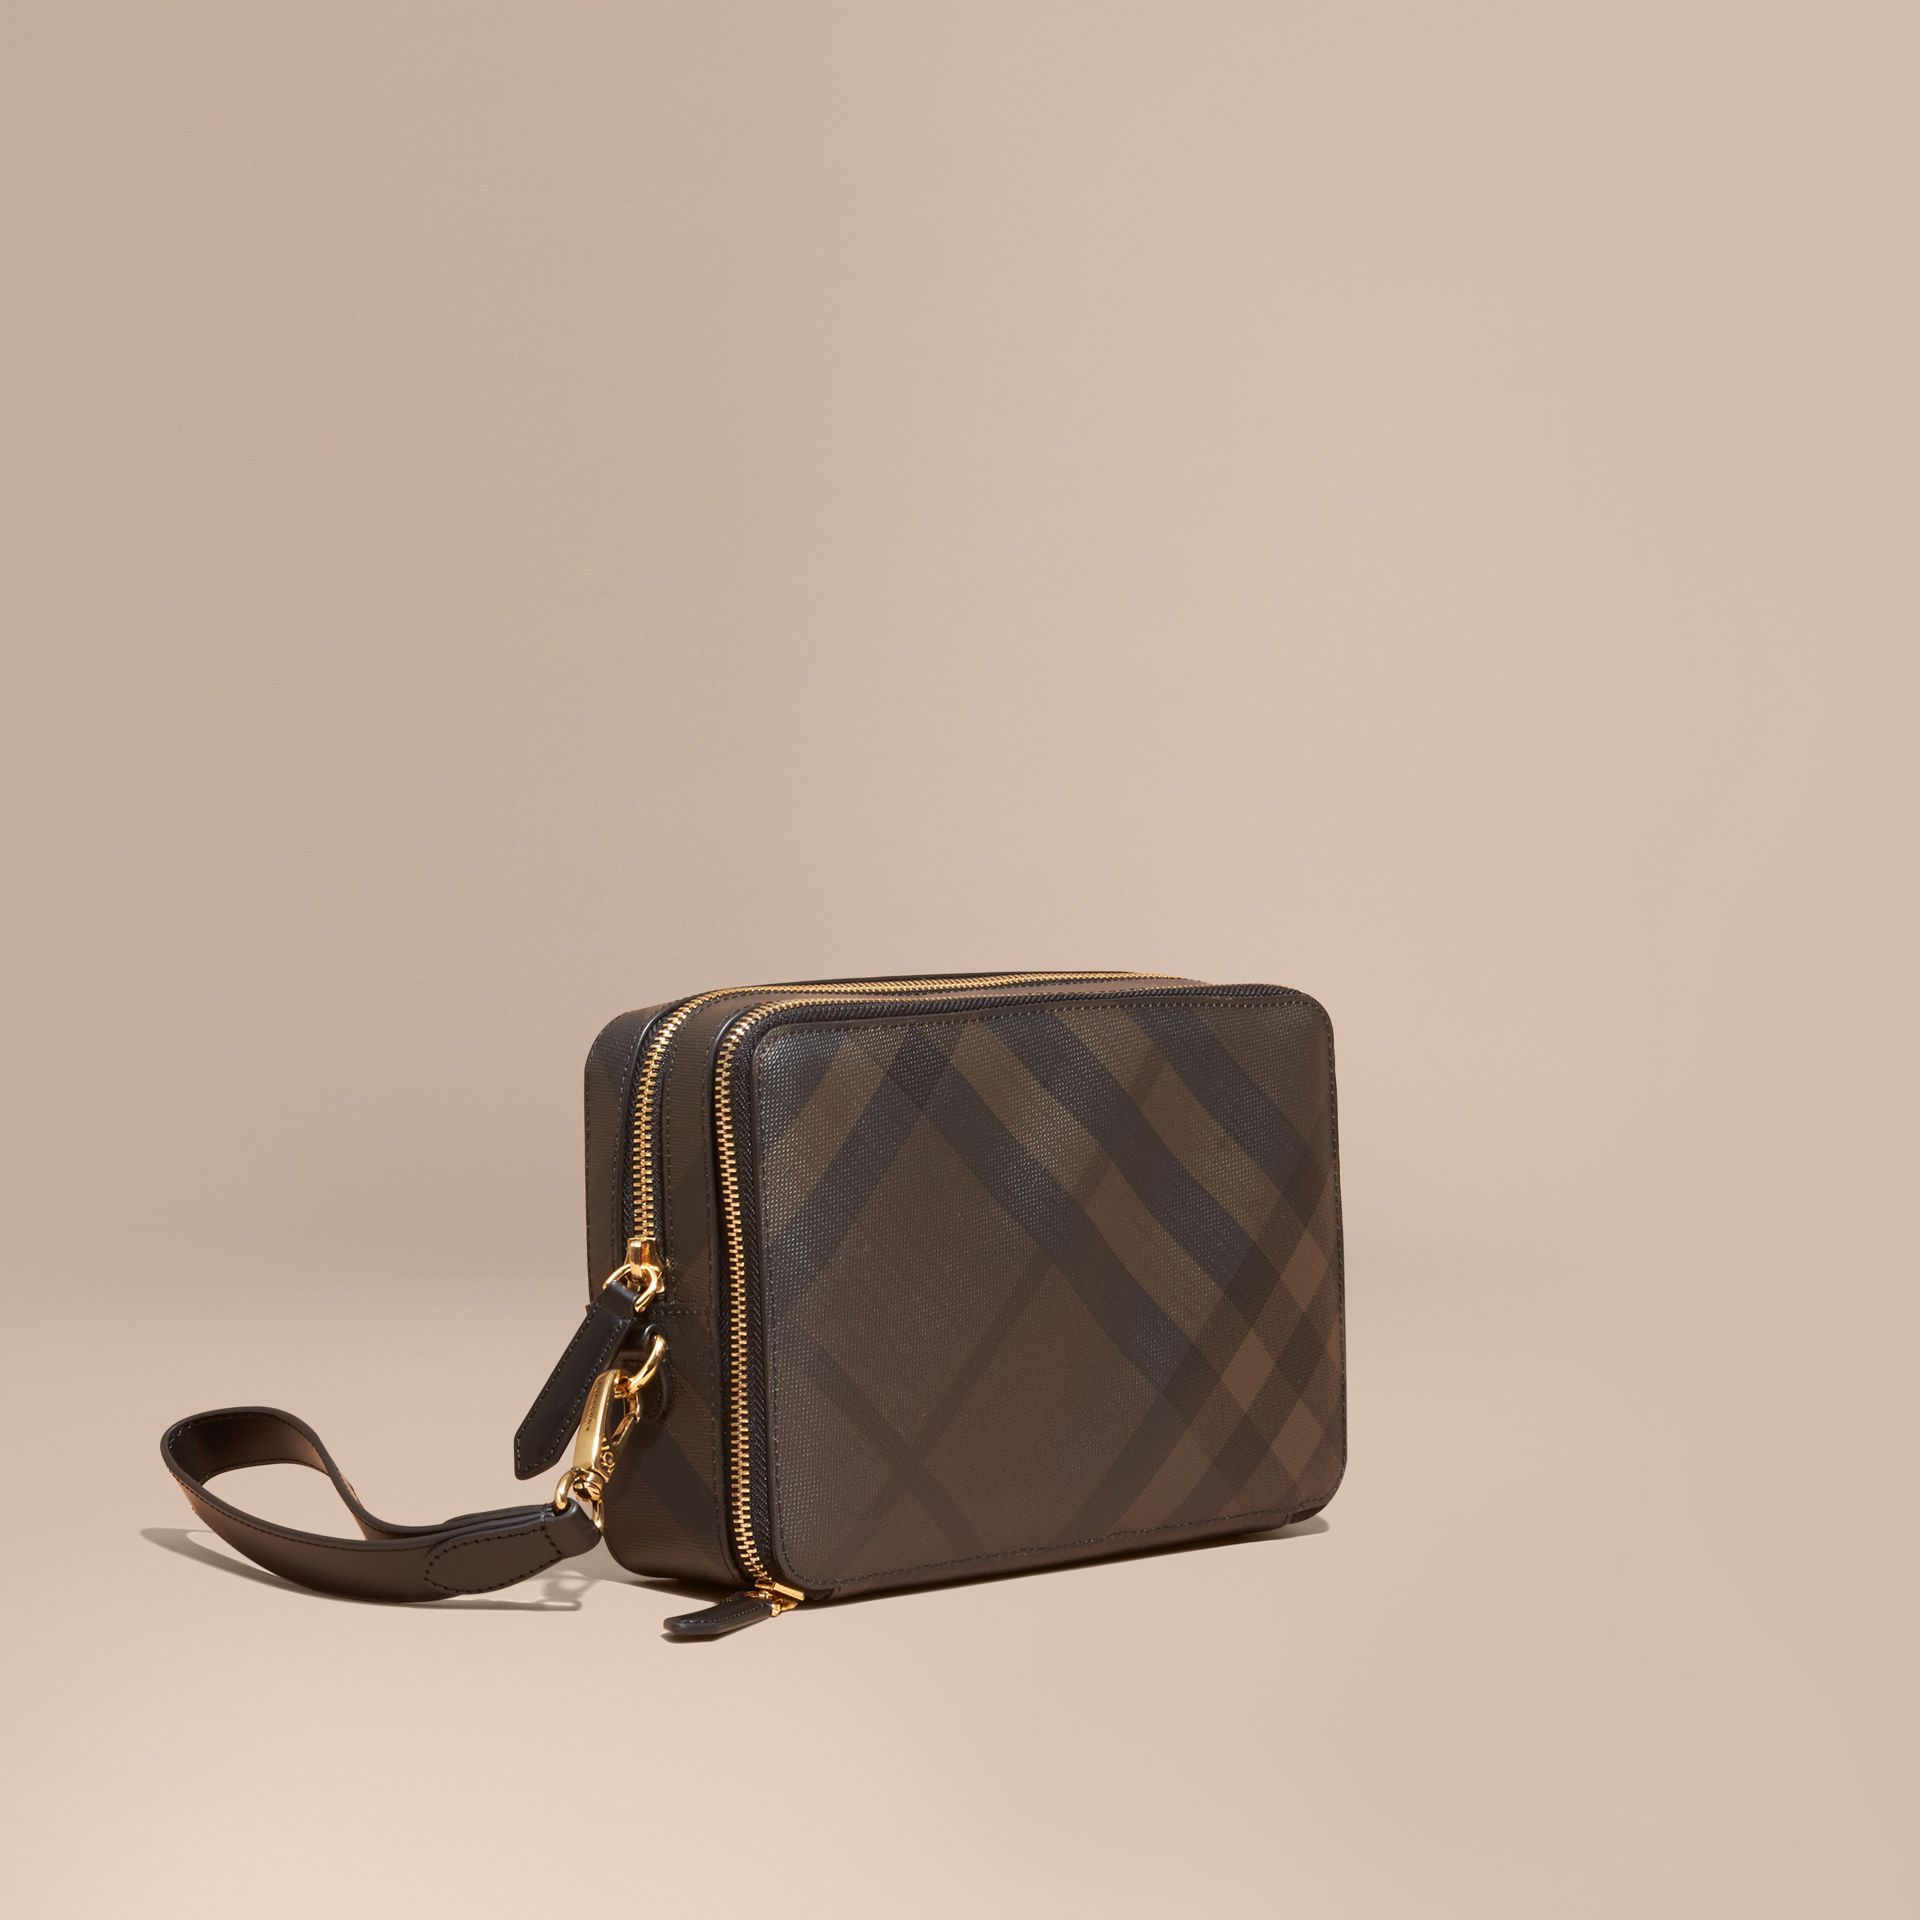 Leather-trimmed London Check Pouch in Chocolate/black - Men | Burberry - gallery image 1